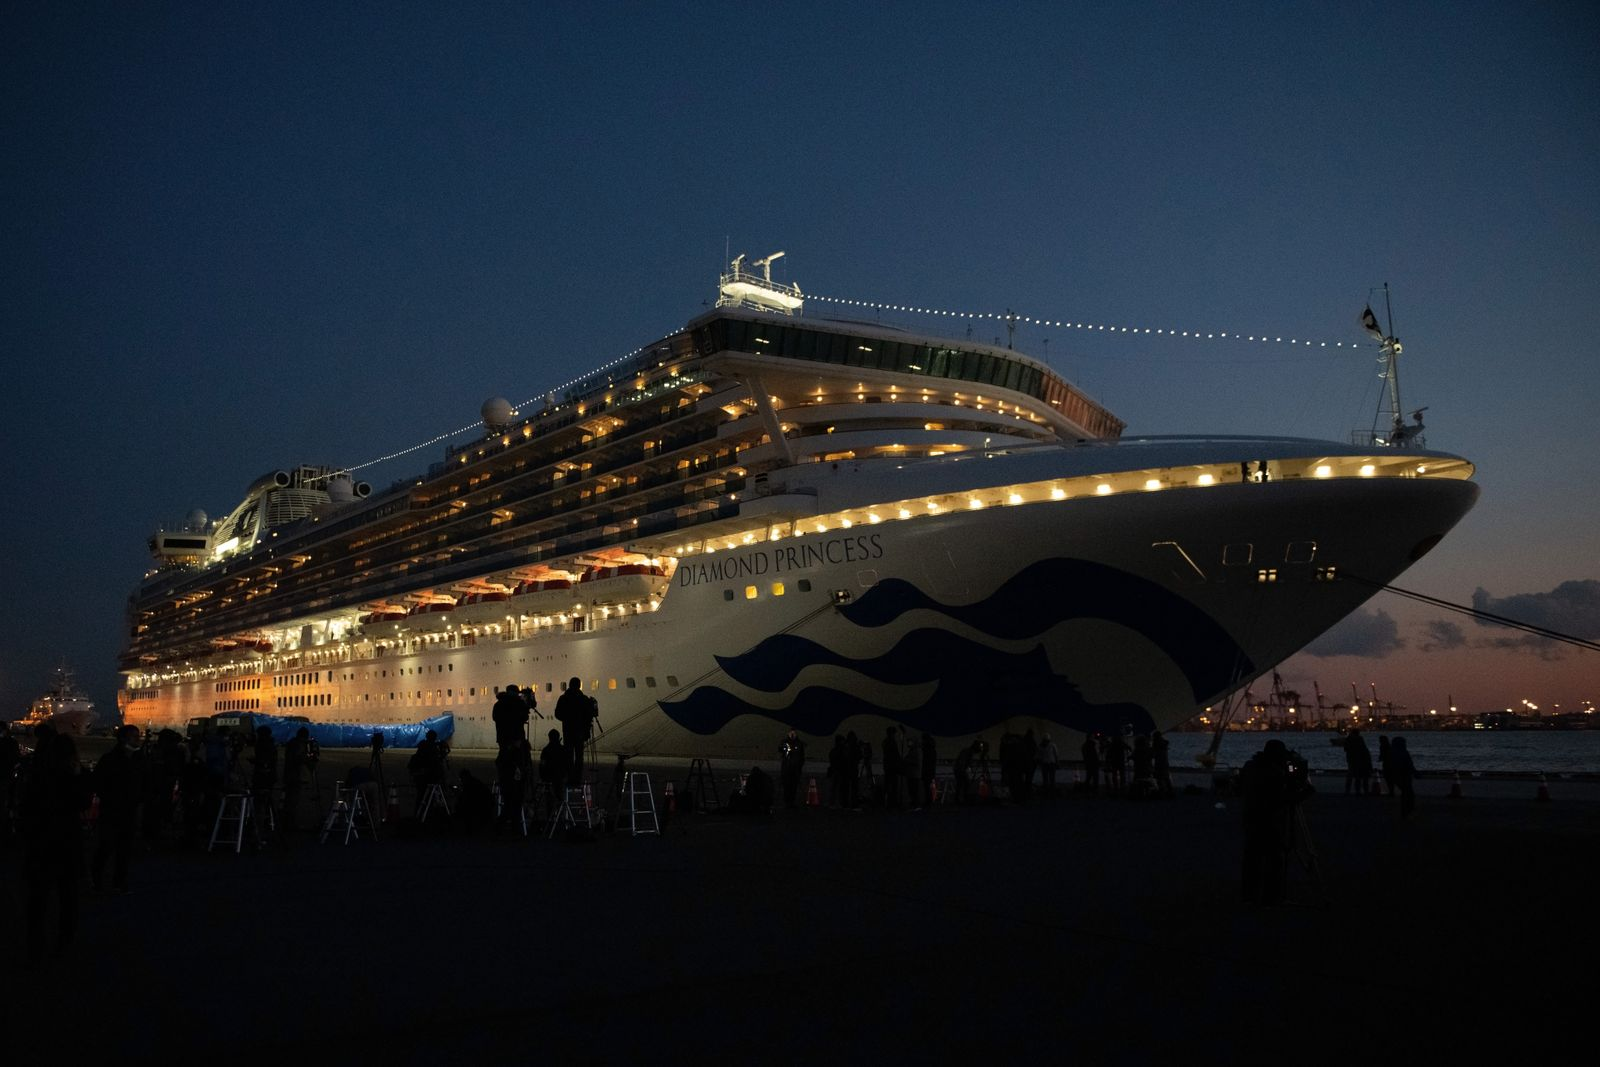 *** BESTPIX *** Diamond Princess Cruise Ship Remains Quarantined As Coronavirus Cases Grow